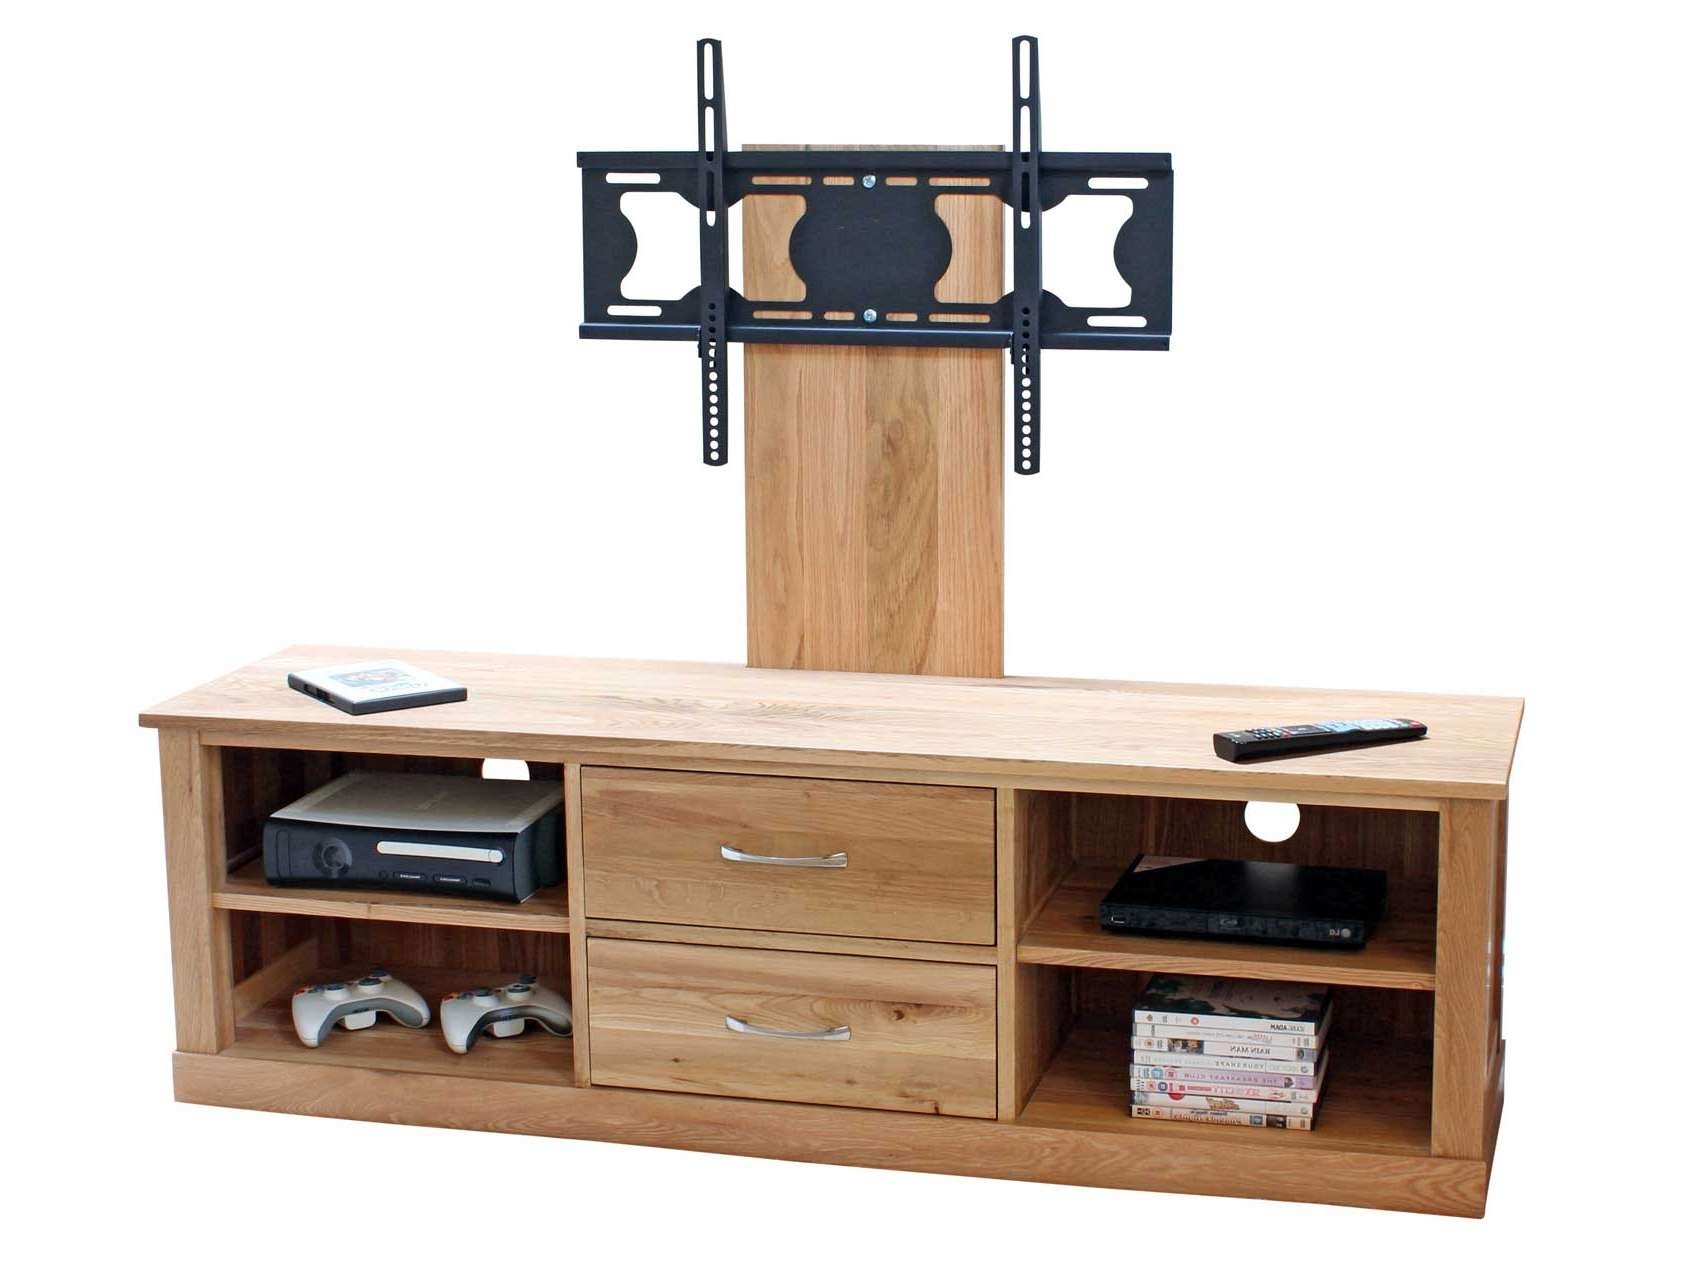 Cool Flat Screen Tv Stands With Mount | Homesfeed Inside Cheap Oak Tv Stands (View 1 of 15)